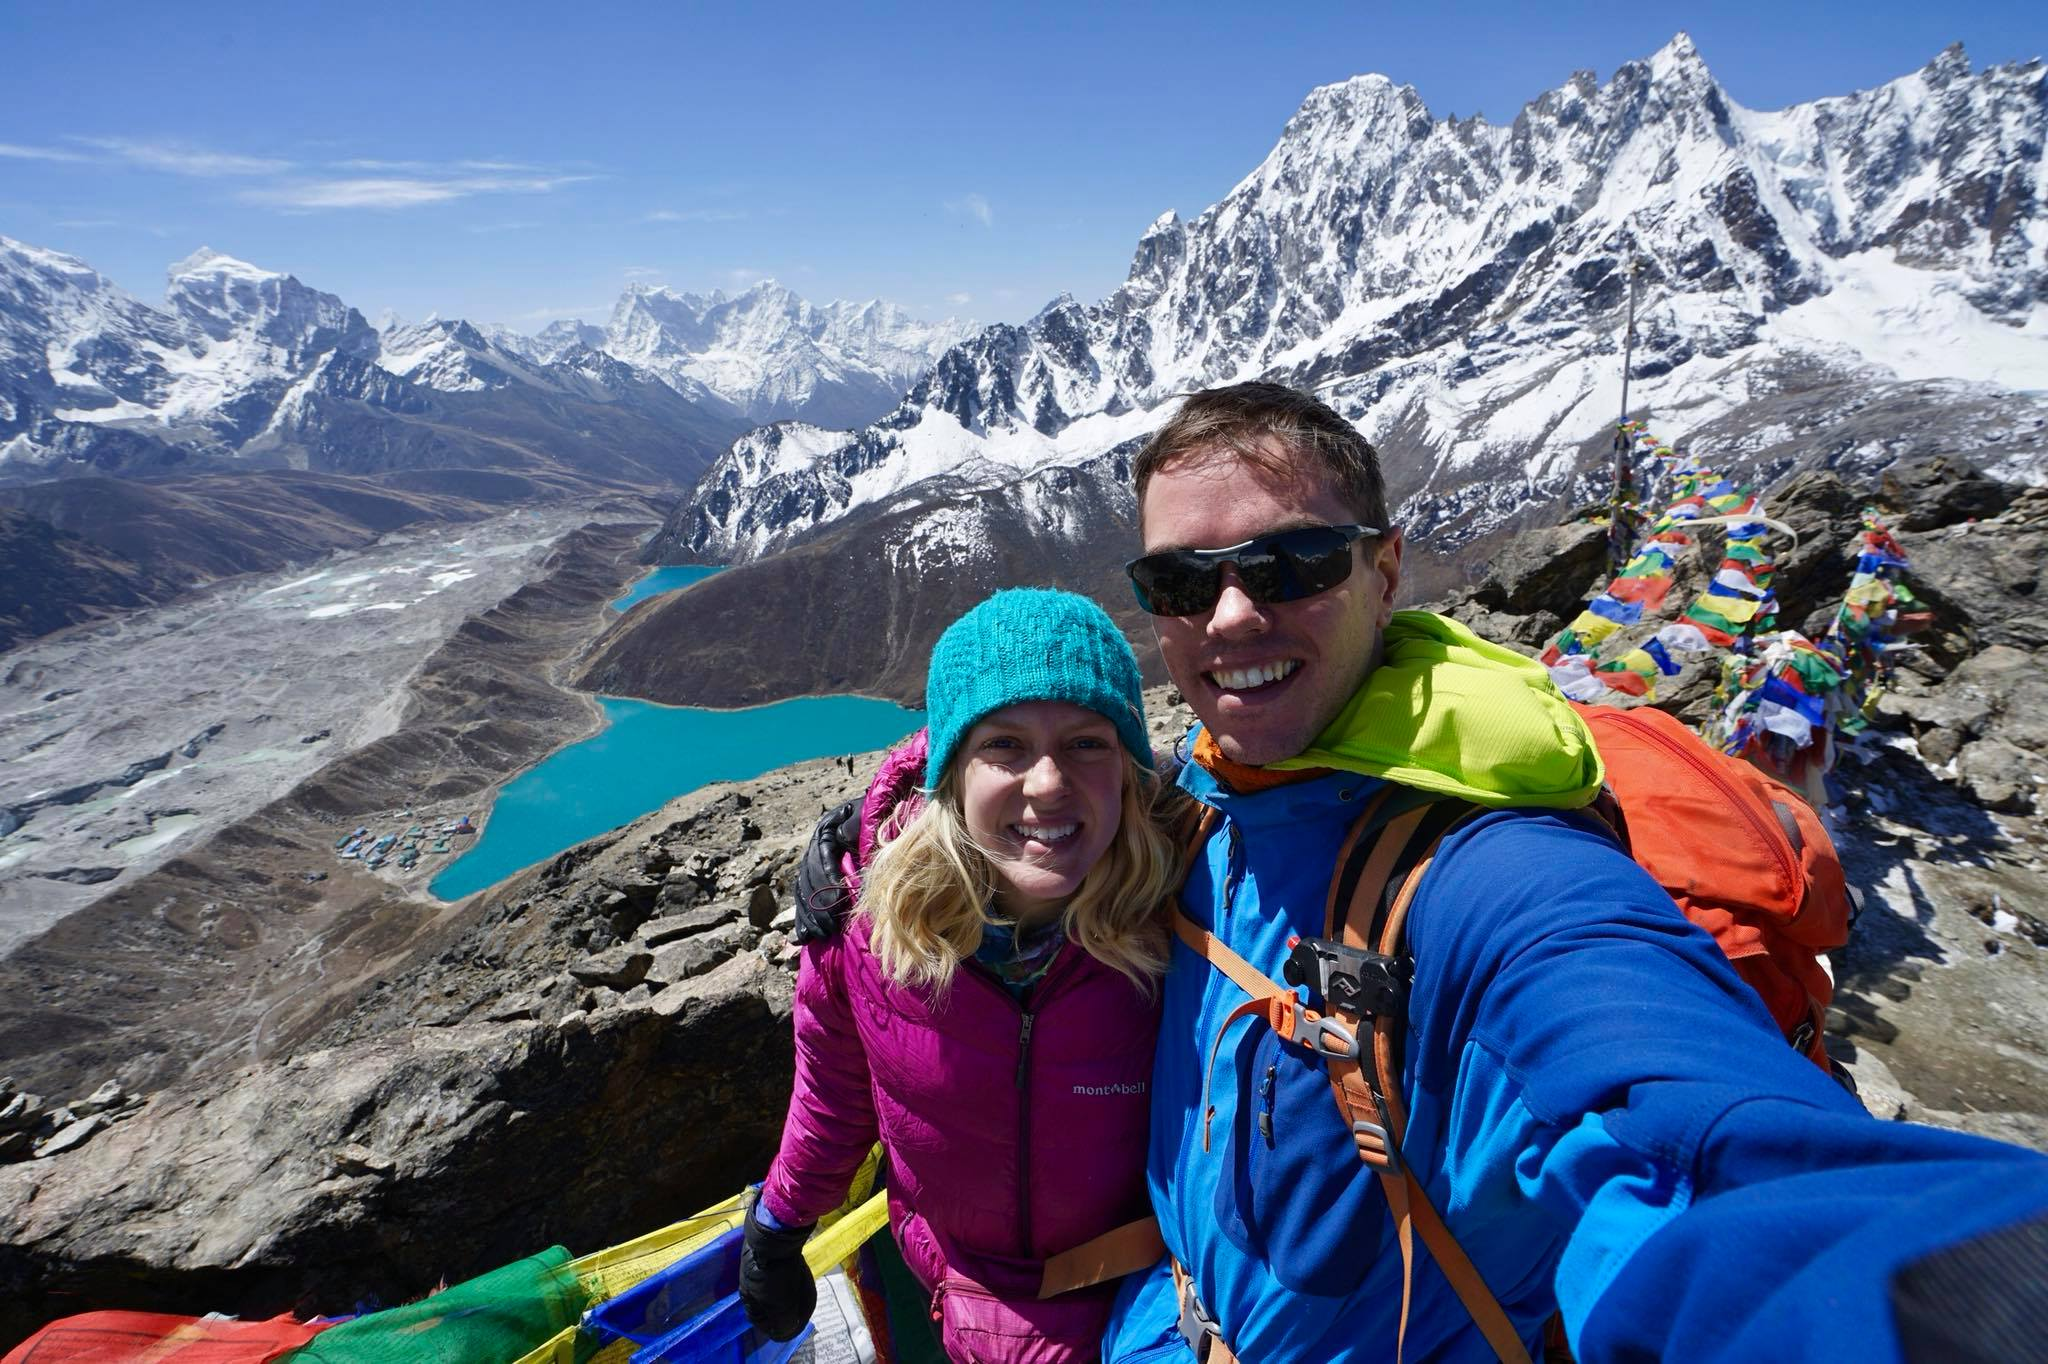 Trekking on a 3-week trip in the Himalayas in May 2018.